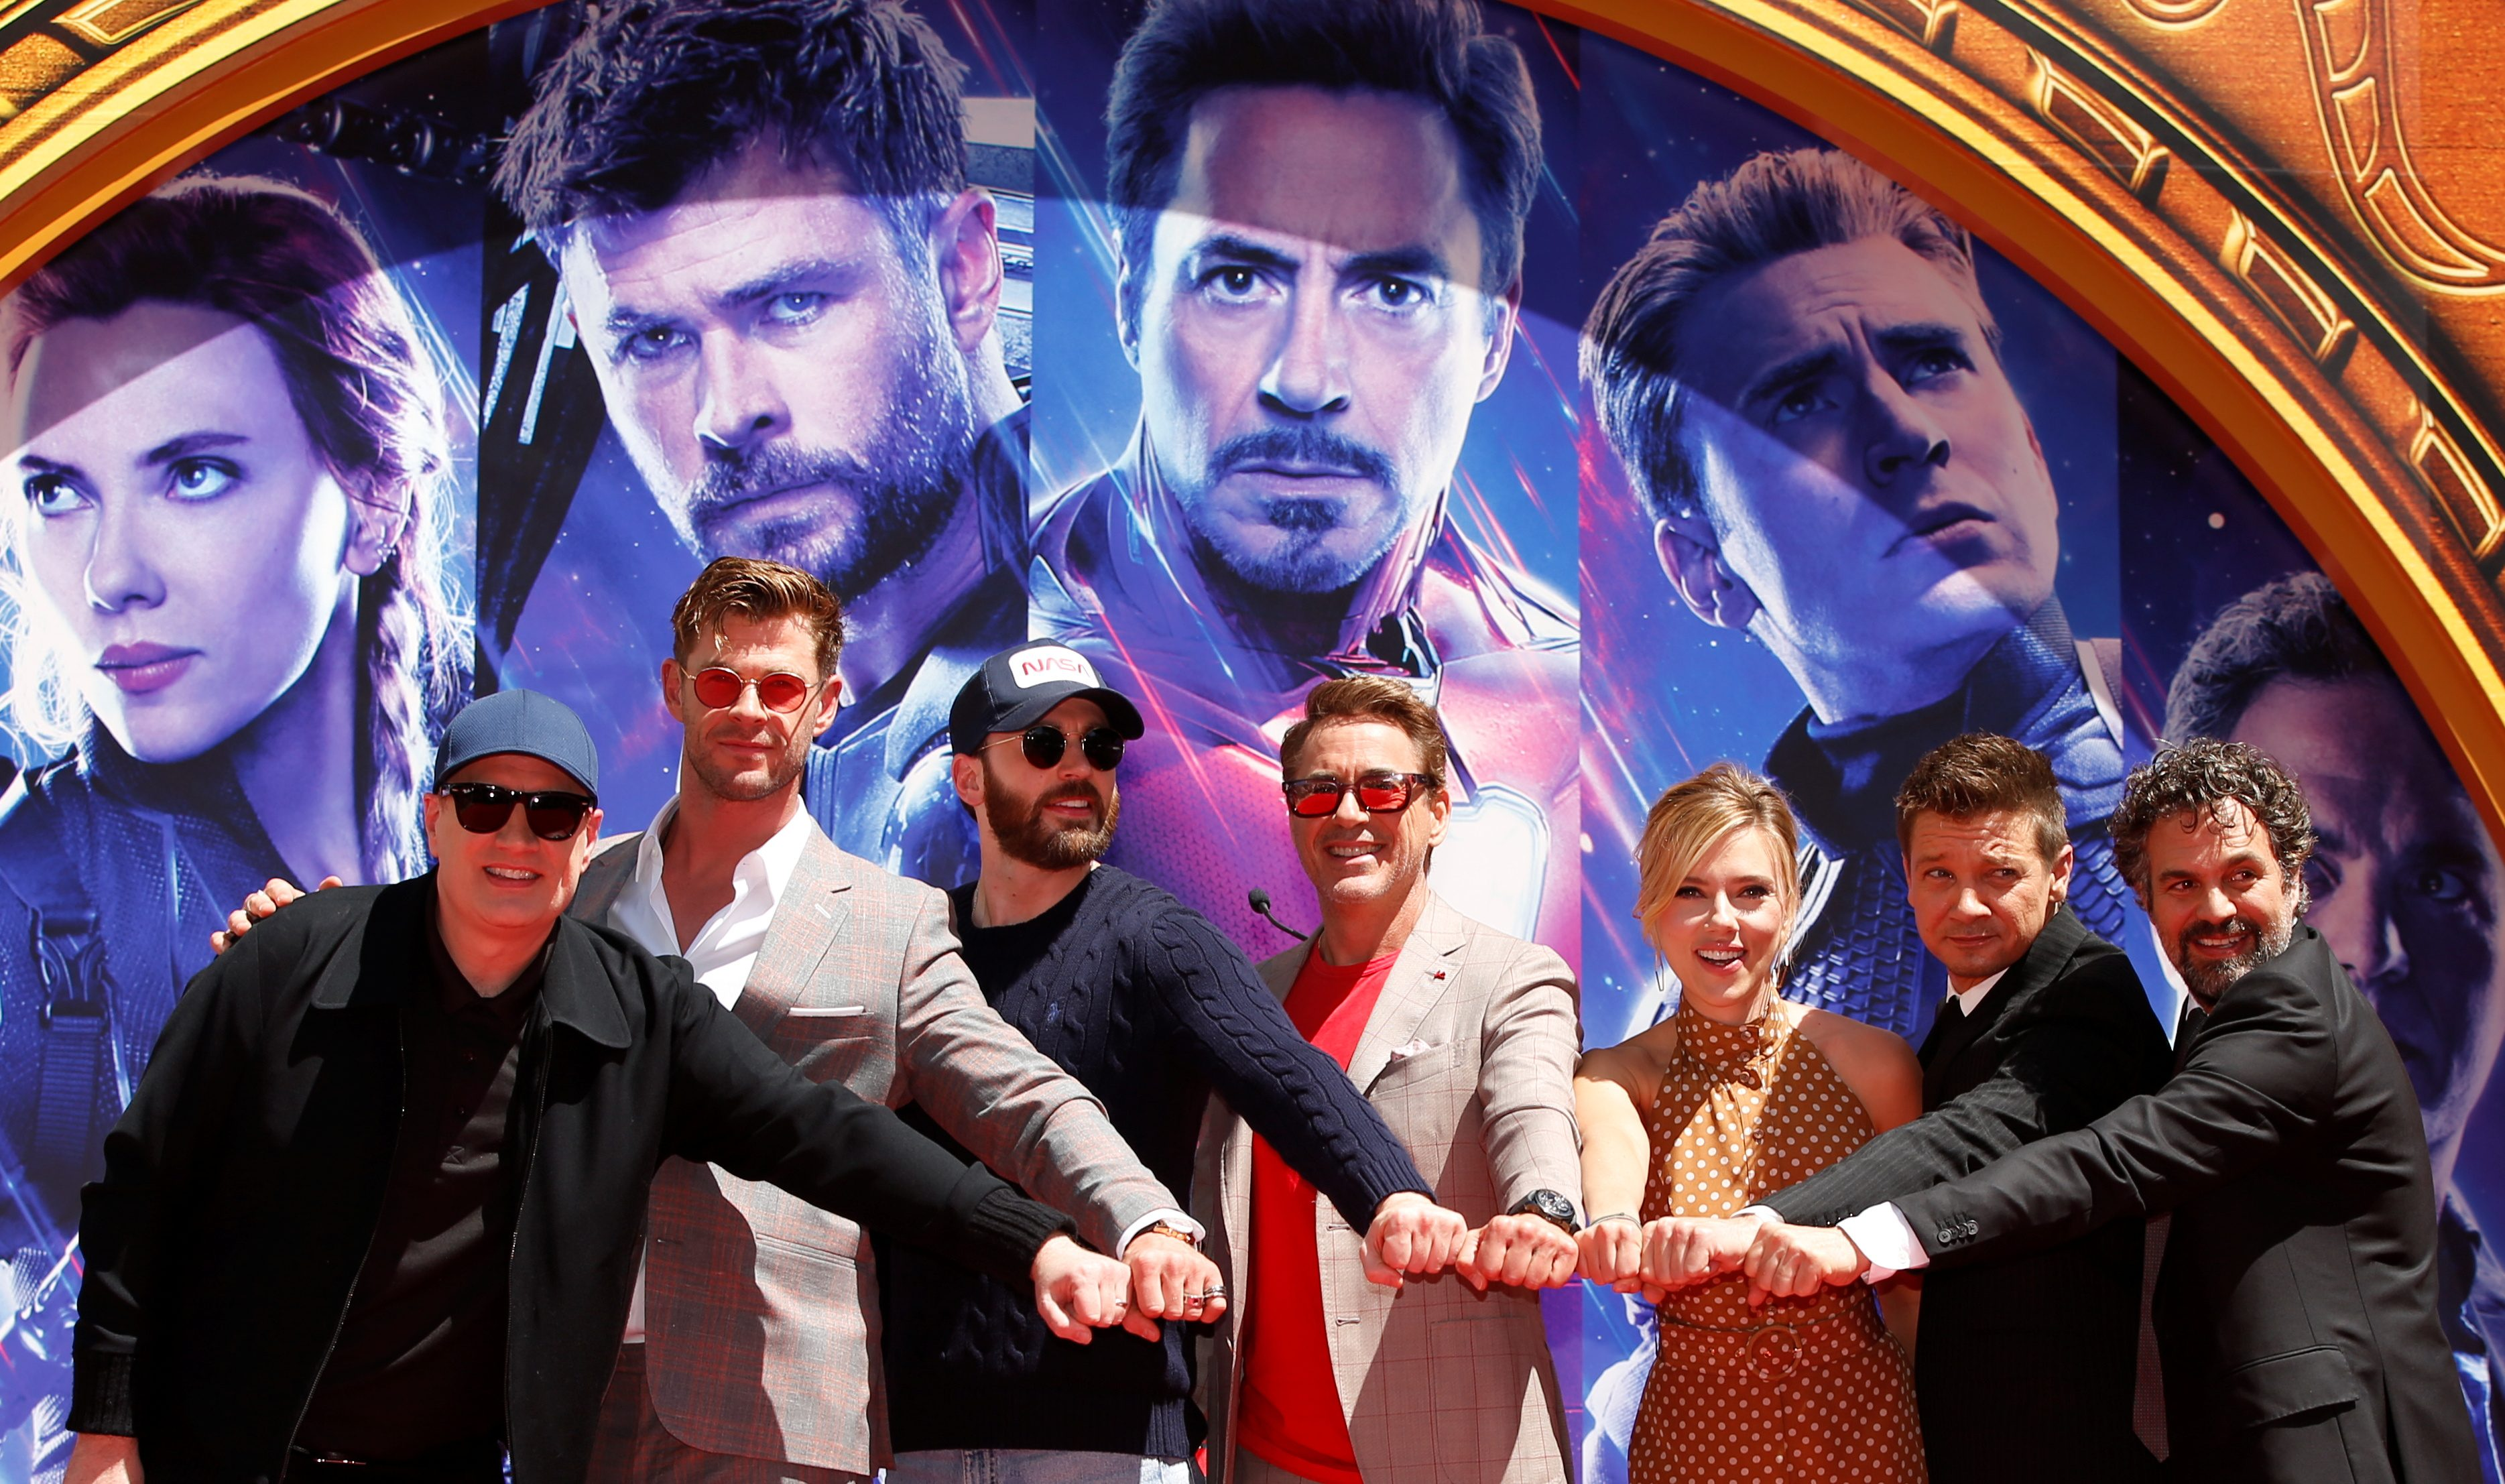 Sale of Game of Thrones and Avengers Endgame merchandise boom in India